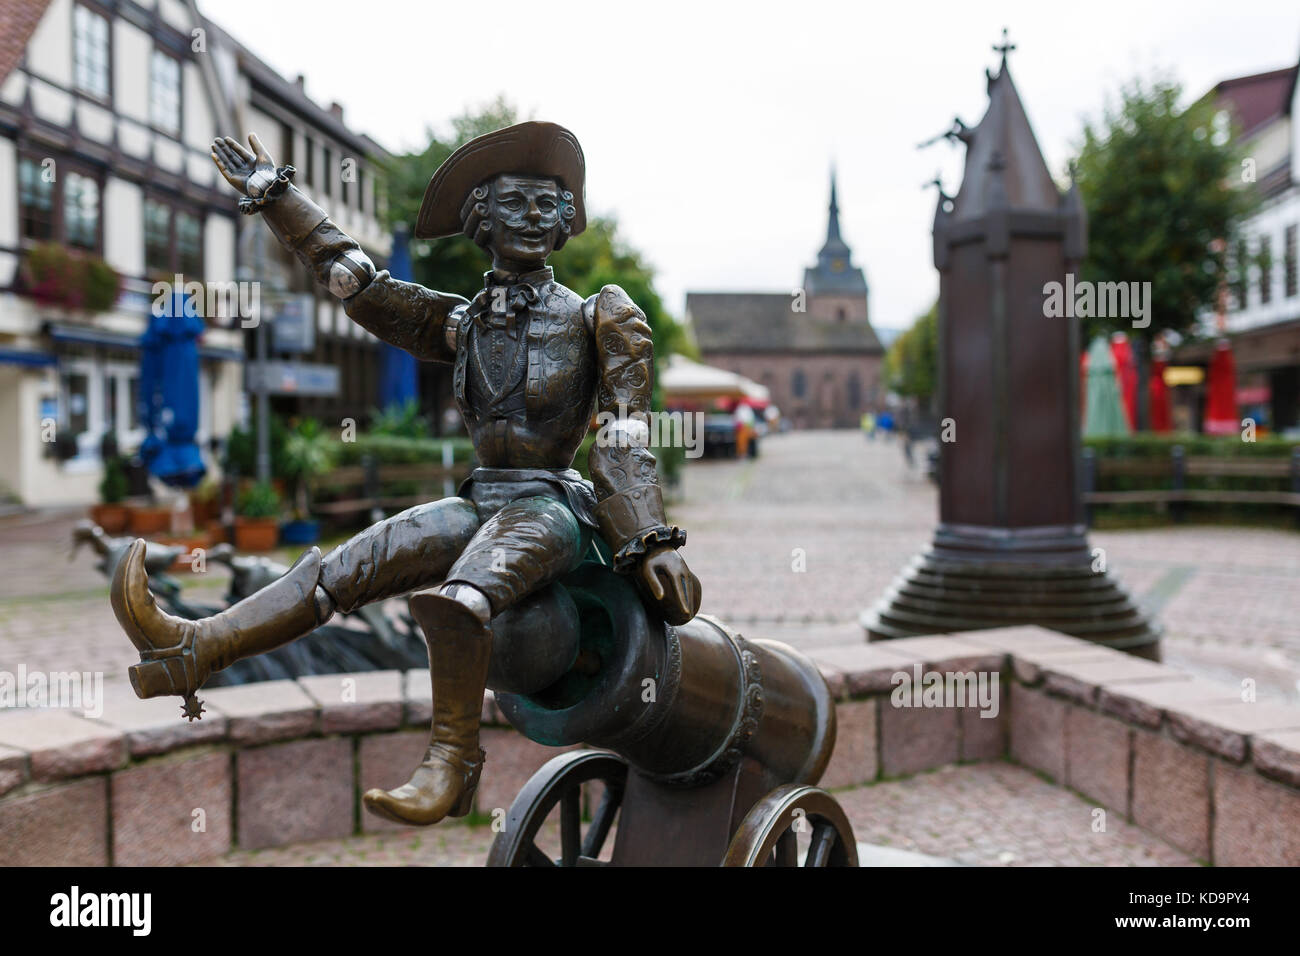 Bodenwerder, Germany. 20th Sep, 2017. The Muenchausen fountain in Bodenwerder, Germany, 20 September 2017. Credit: - Stock Image